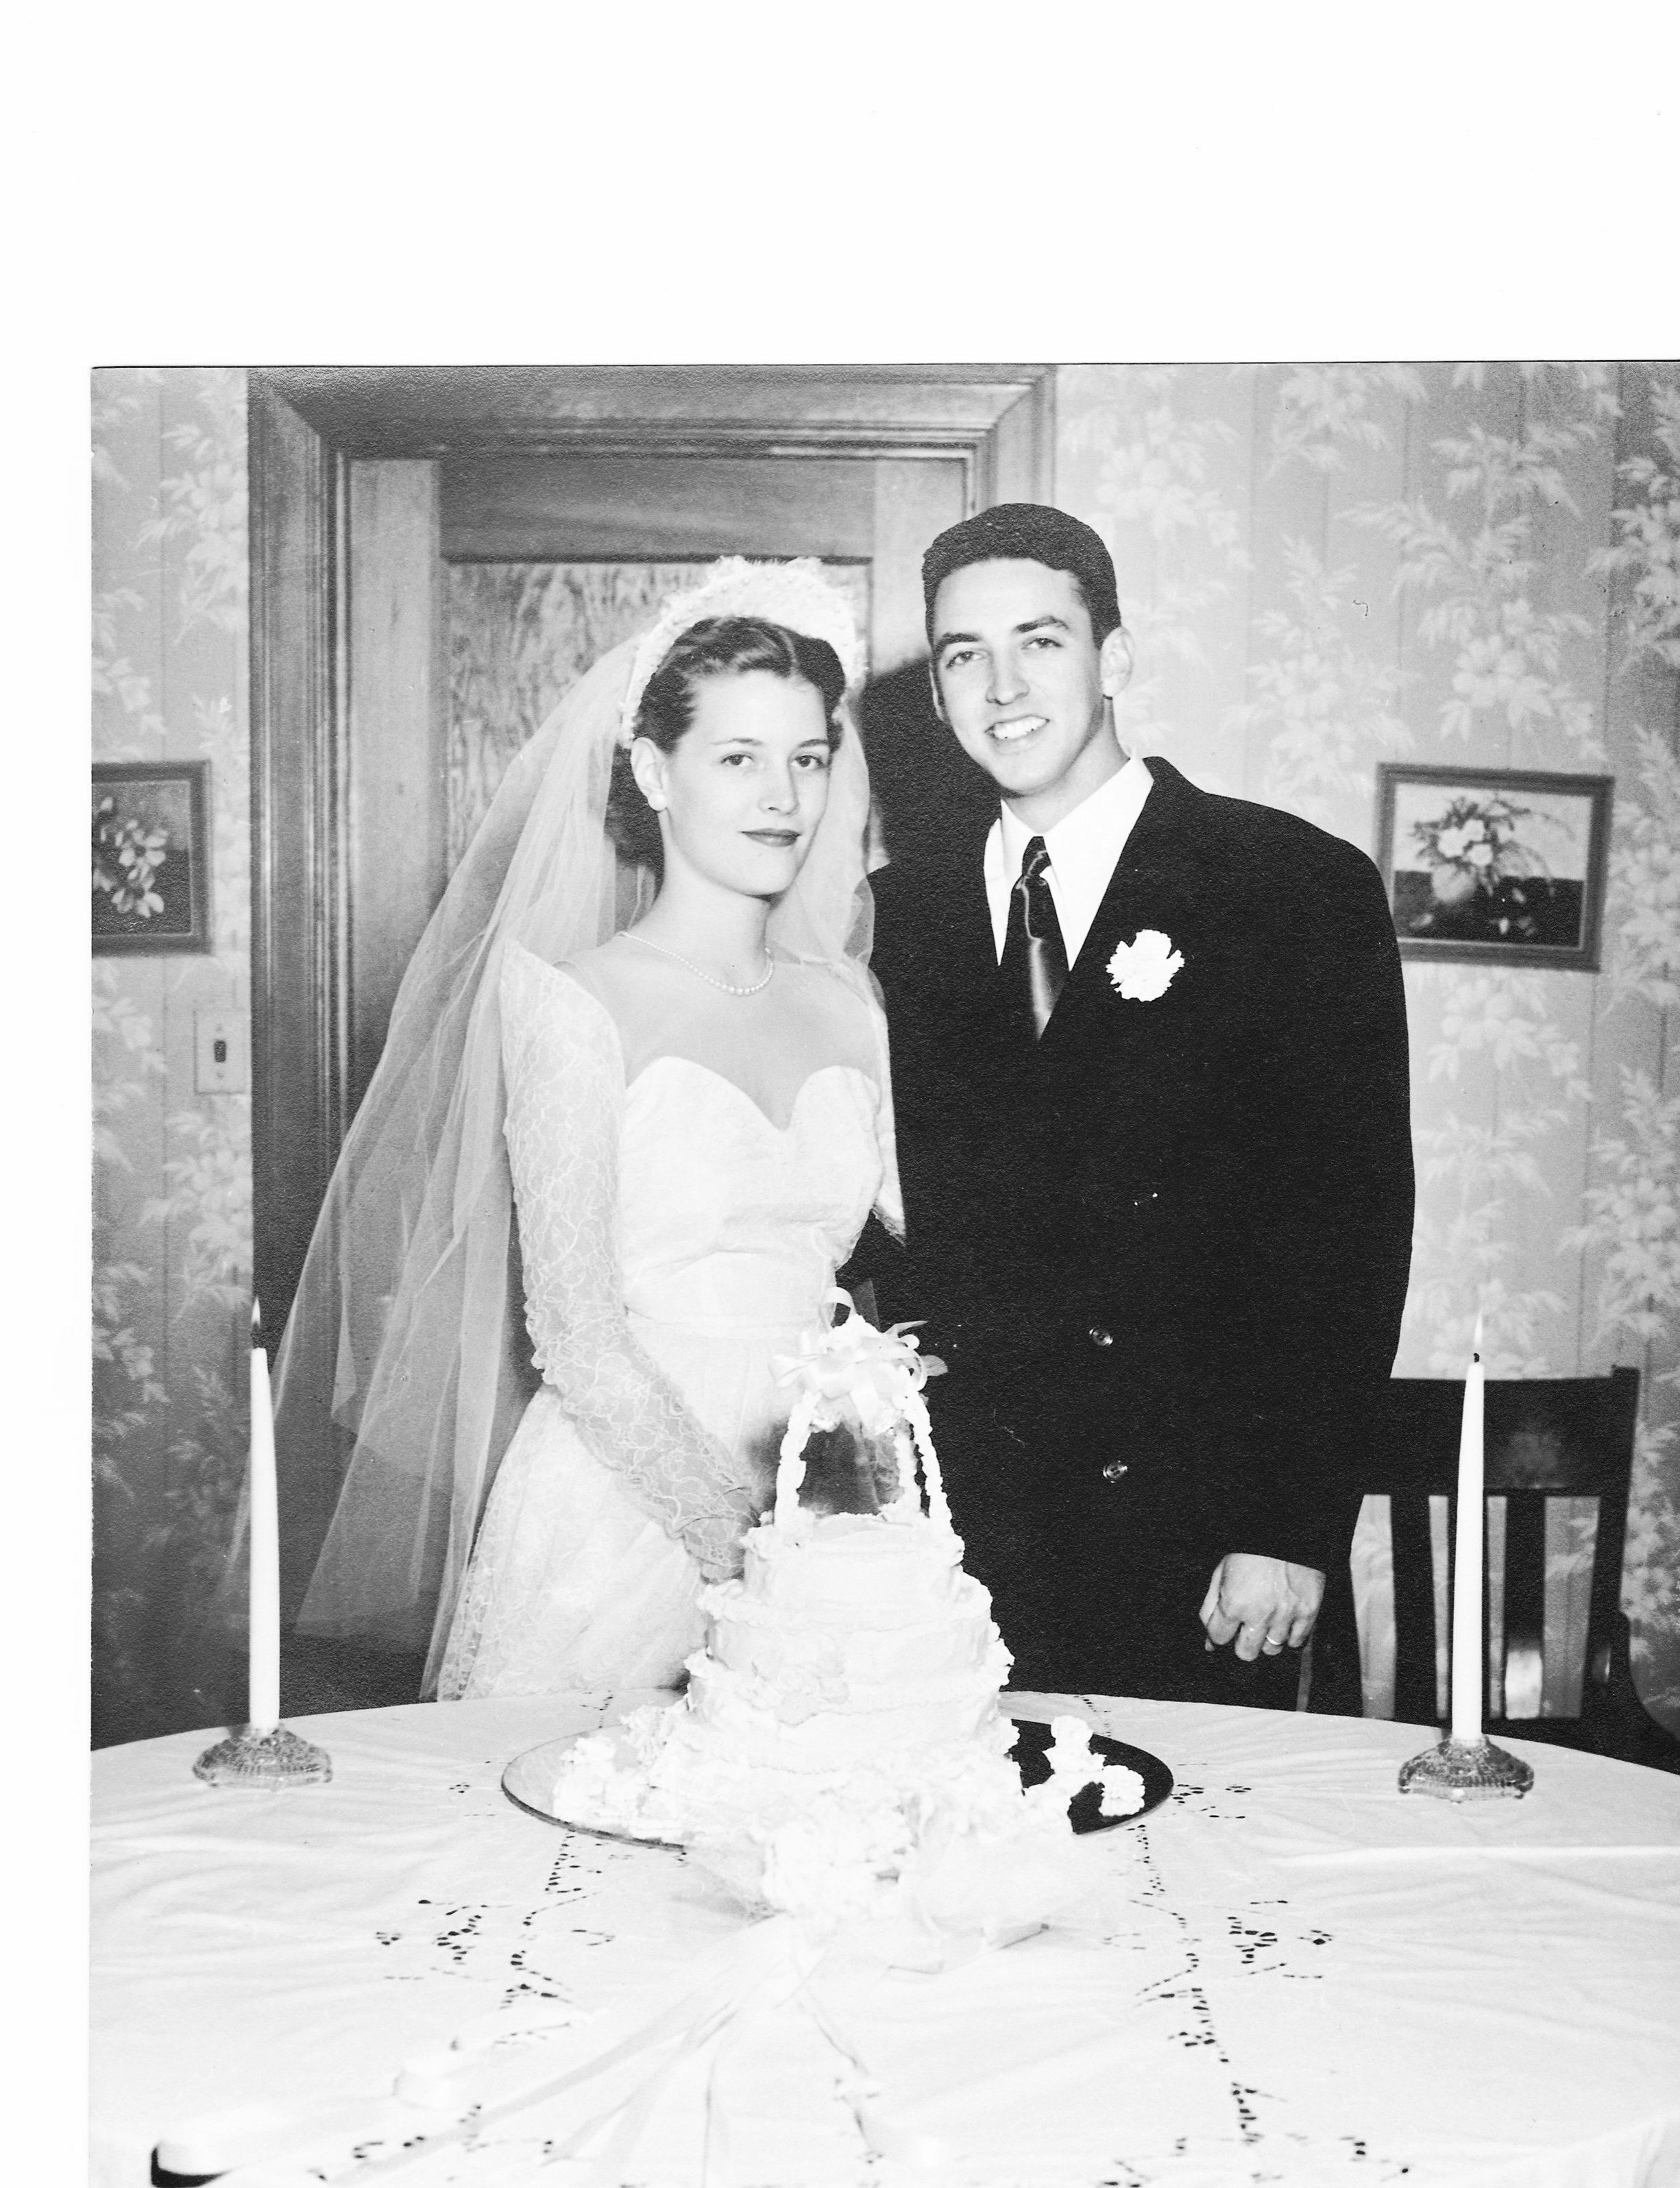 Chris's Nana and Poppo at their wedding in Austin, TX. 1951